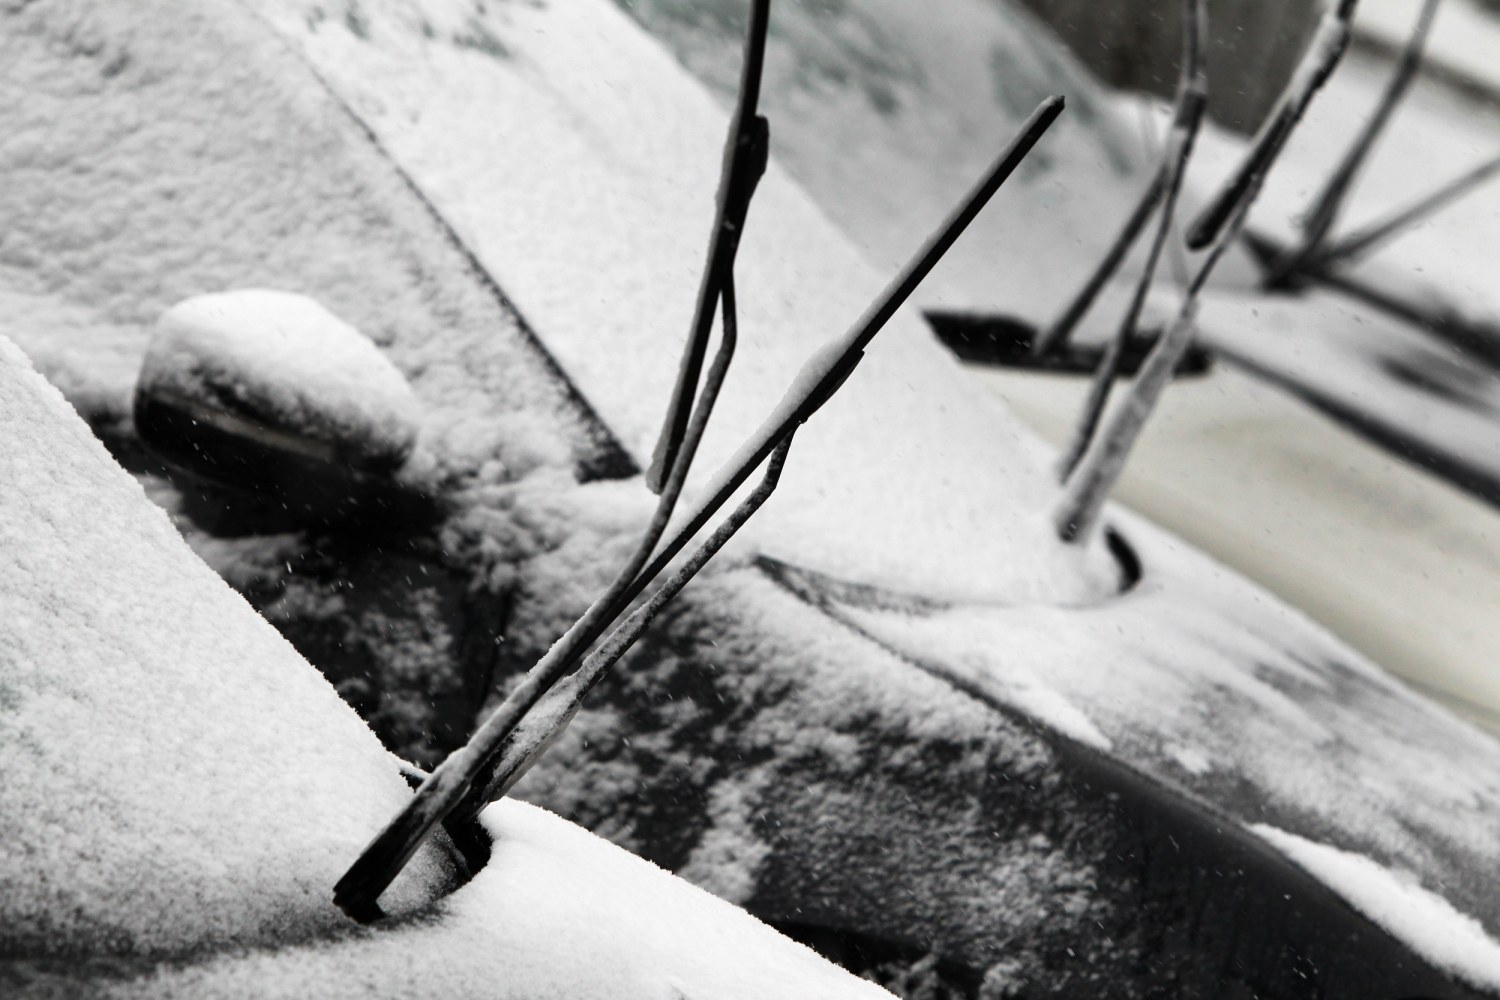 These Cold Weather Driving Hacks Take The Hassle Out Of